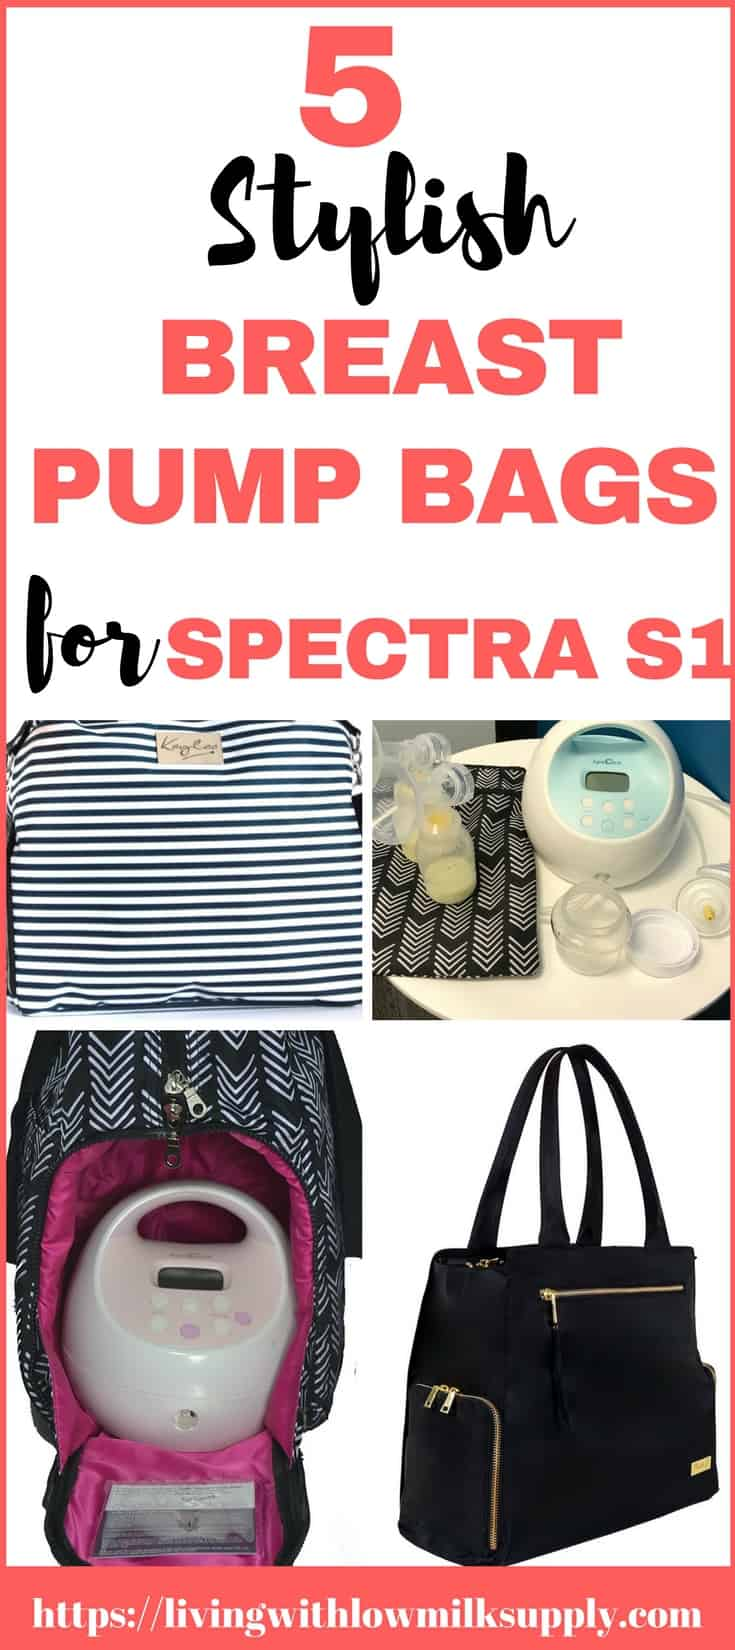 Are you looking for a stylish breast pump bag for Spectra breast pump? Check out these 5 most popular breast pump bags that fits Spectra S1, easy to organize and great for working moms